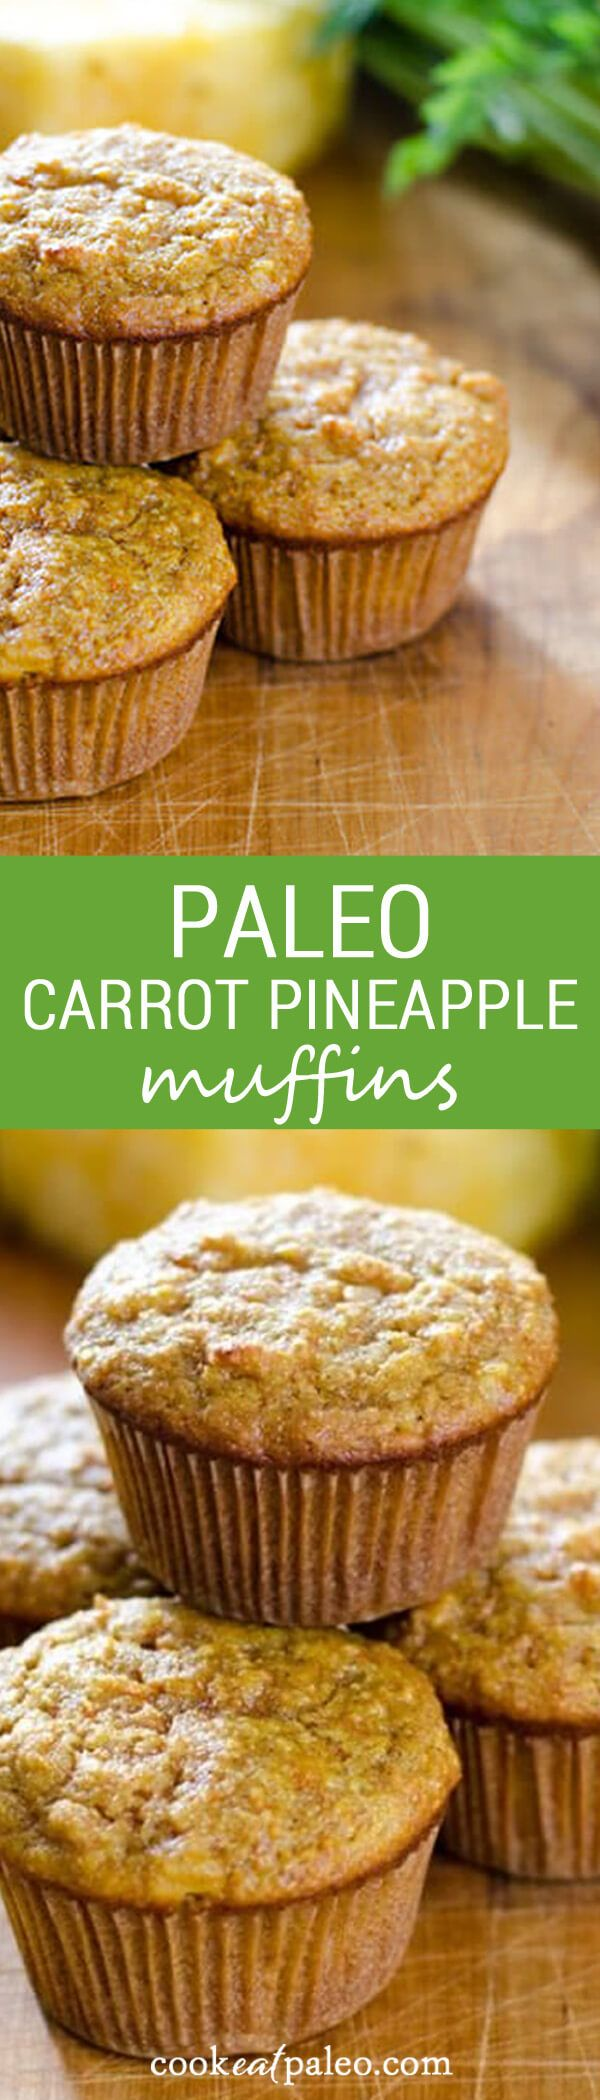 These carrot pineapple paleo muffins are perfect for breakfast or a quick snack…